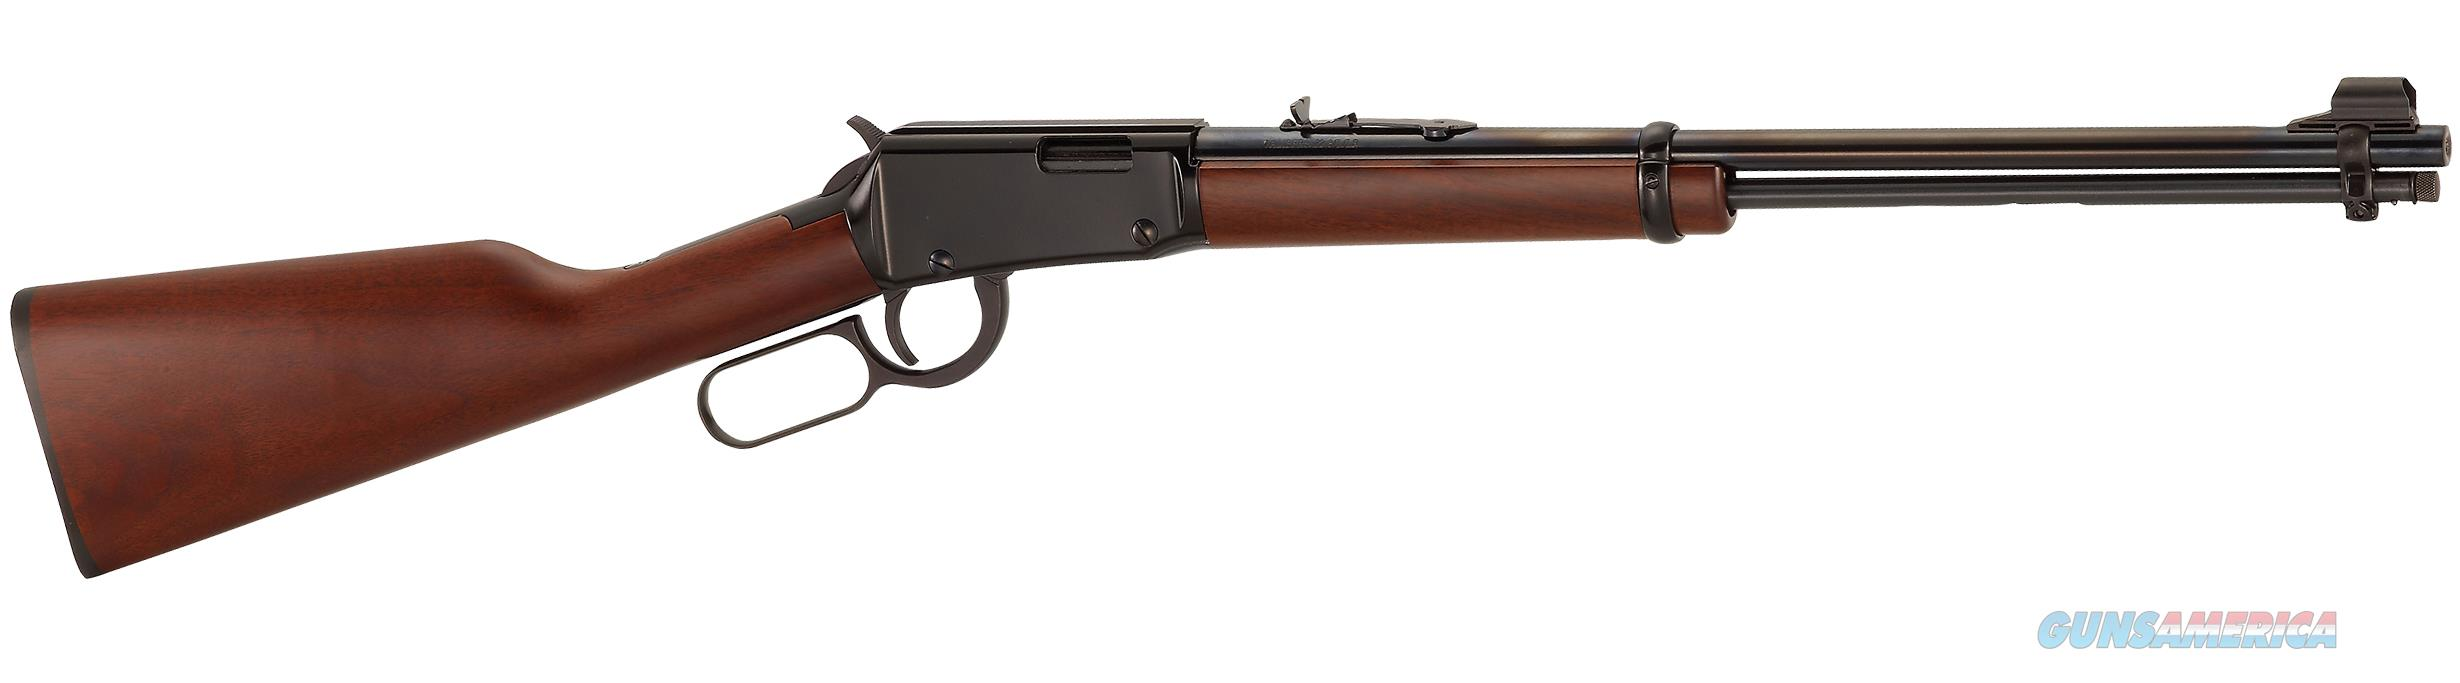 "Henry Lever 22 Long Rifle 18.25"" 15+1 - New in Box  Guns > Rifles > Henry Rifle Company"